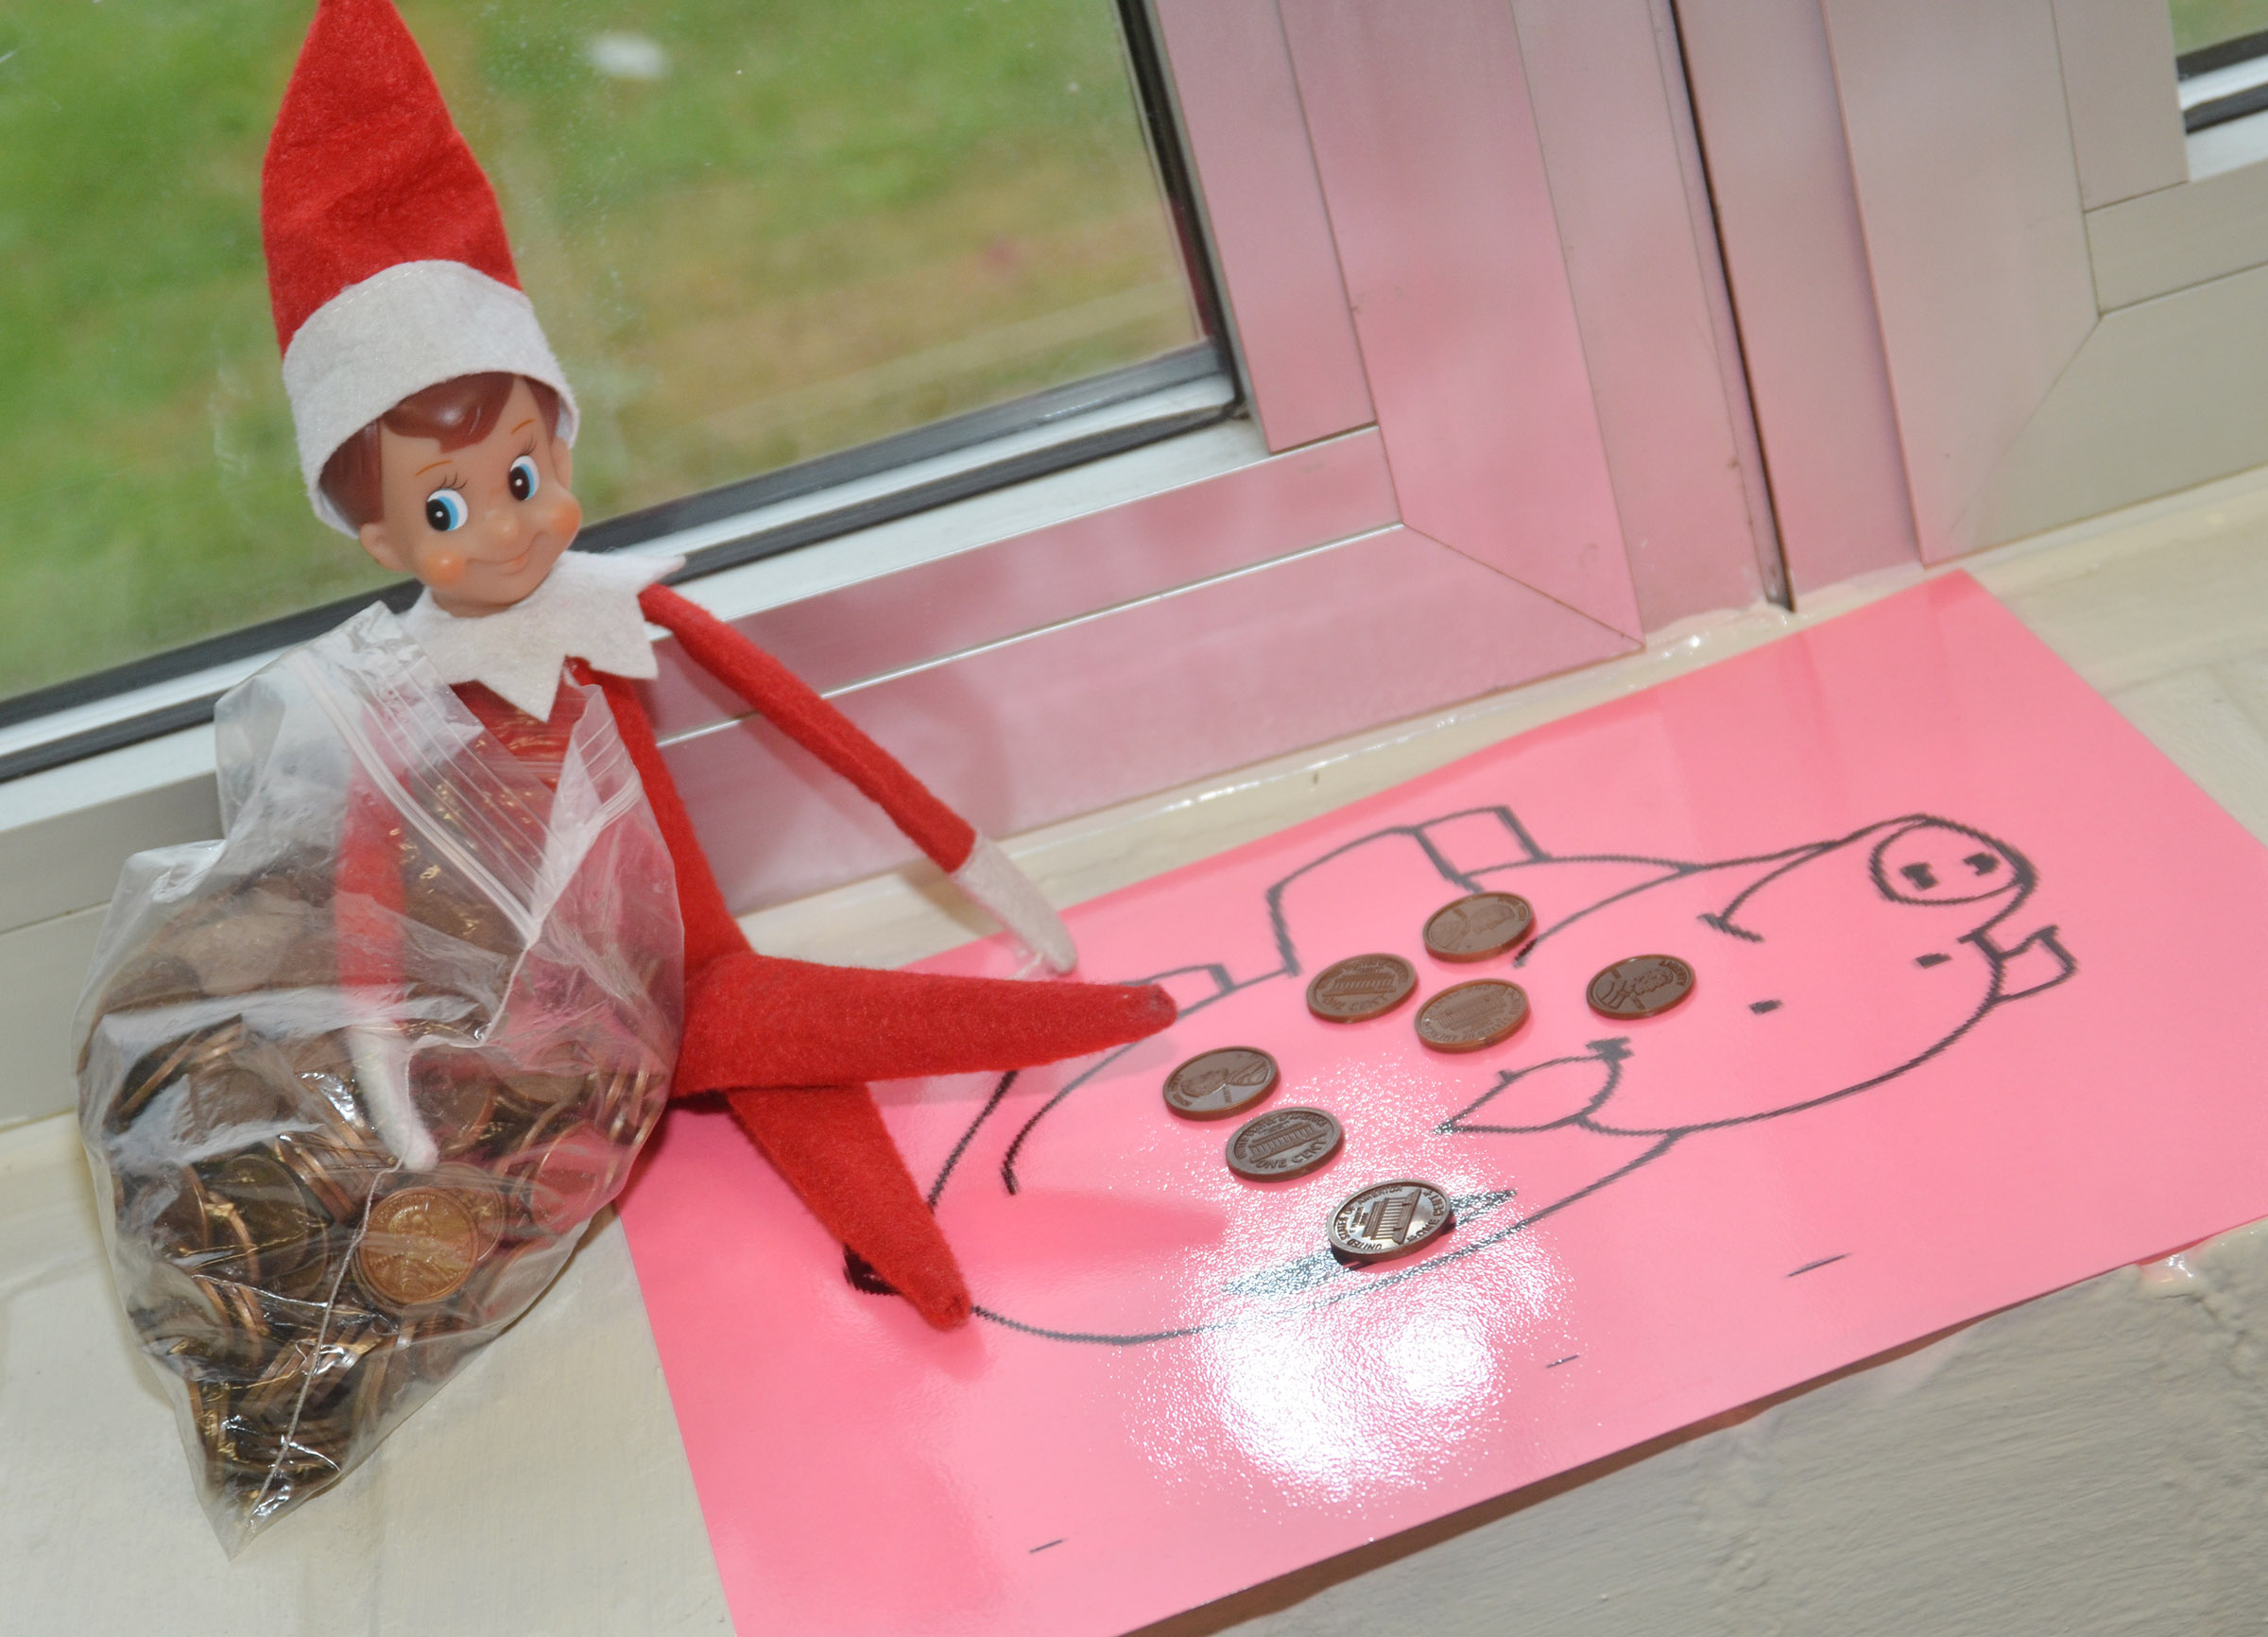 Elves recently created some messes at CES. This elf spent some time counting the class's money.